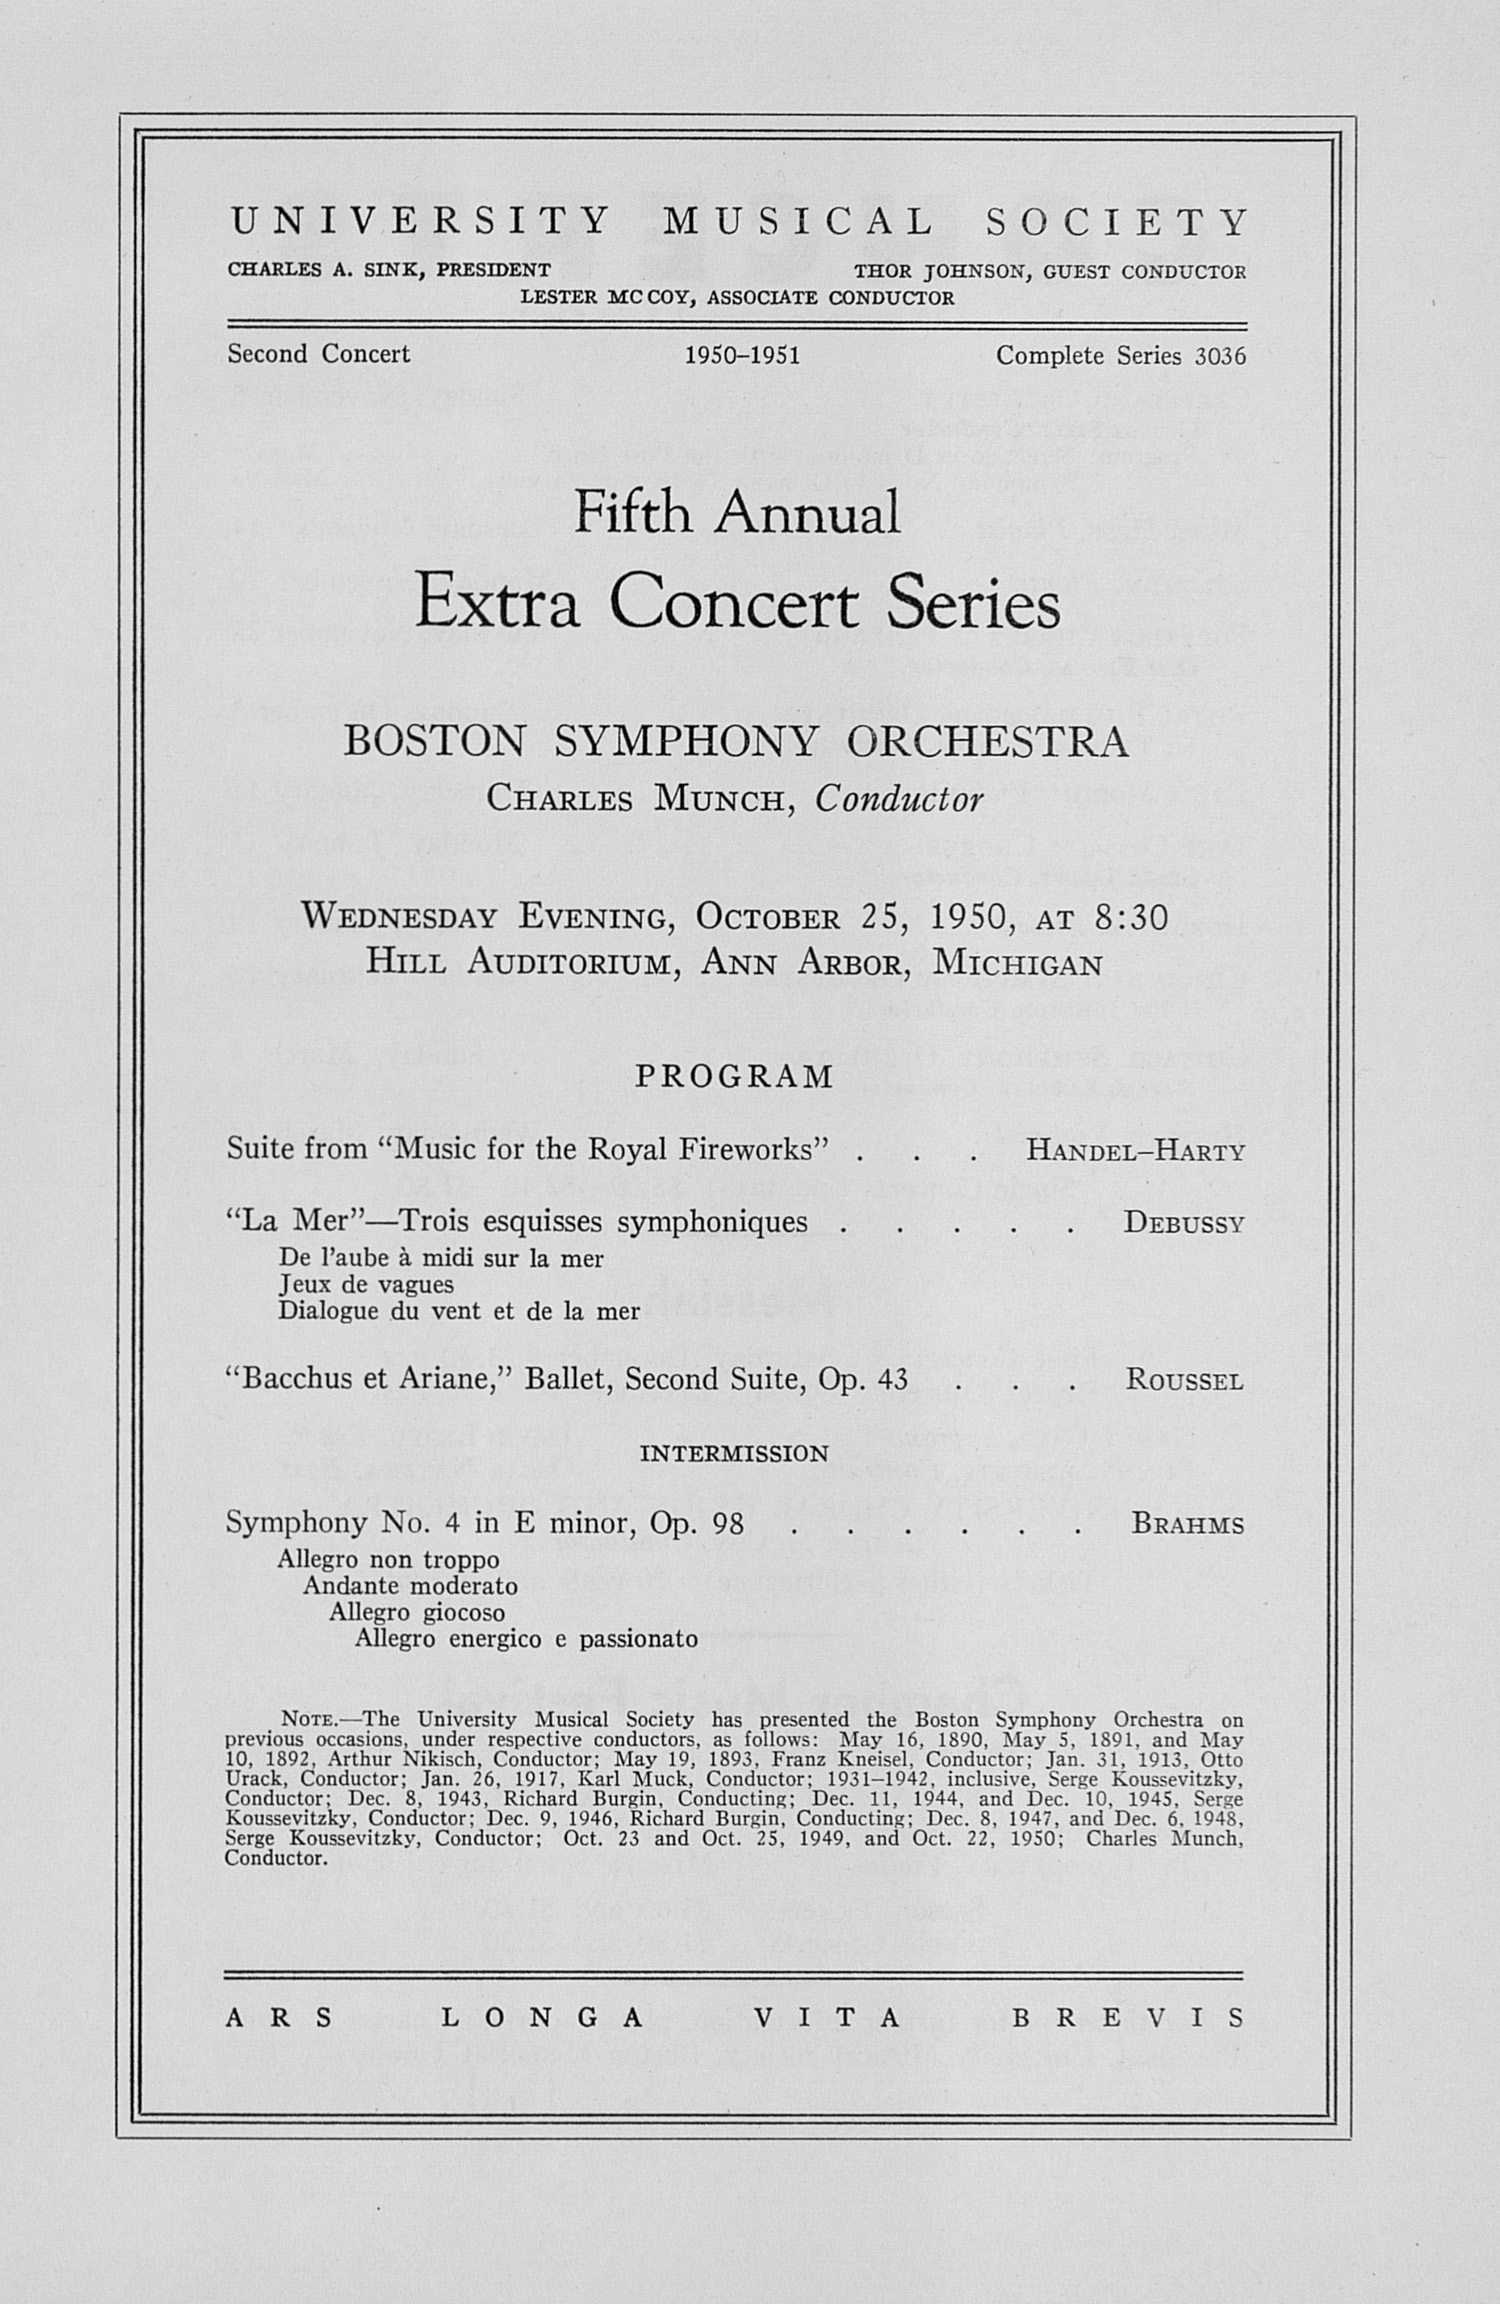 UMS Concert Program, October 25, 1950: Fifth Annual Extra Concert Series -- Boston Symphony Orchestra image